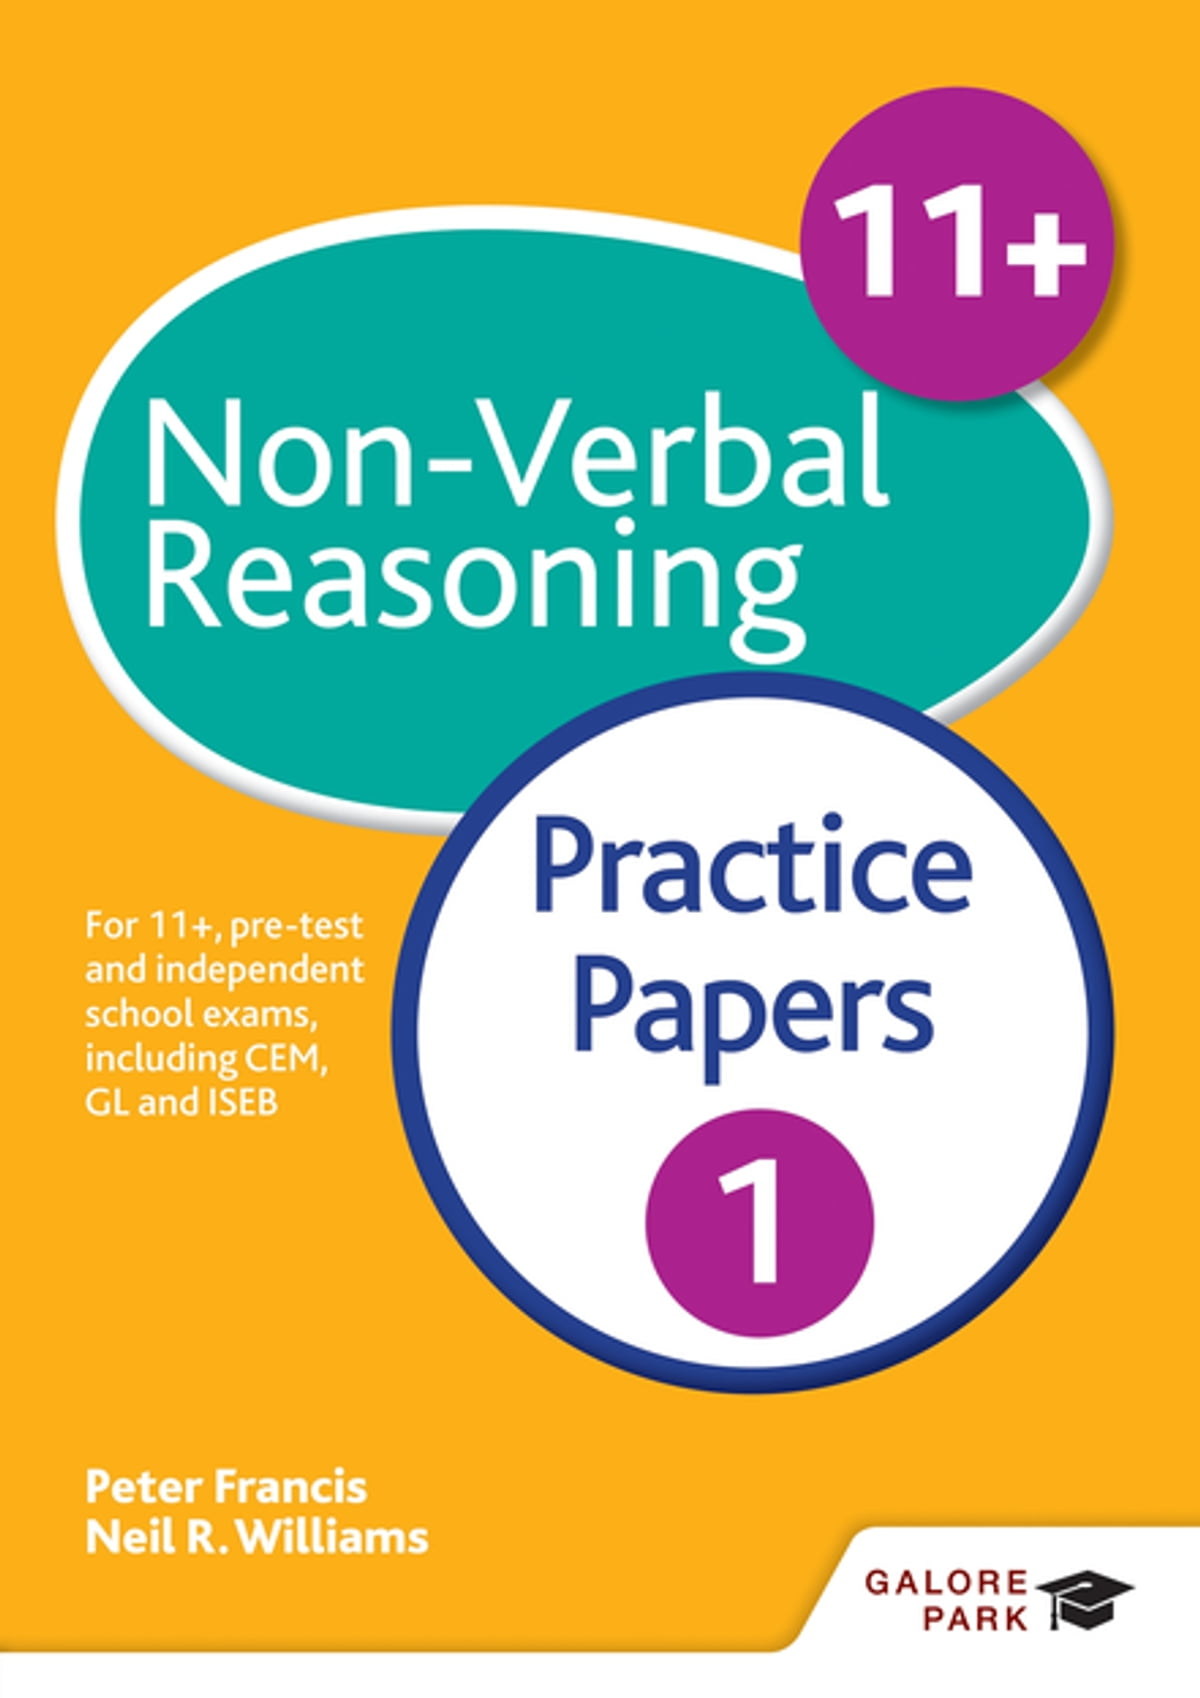 11 Non Verbal Reasoning Practice Papers 1 Ebook By Neil R